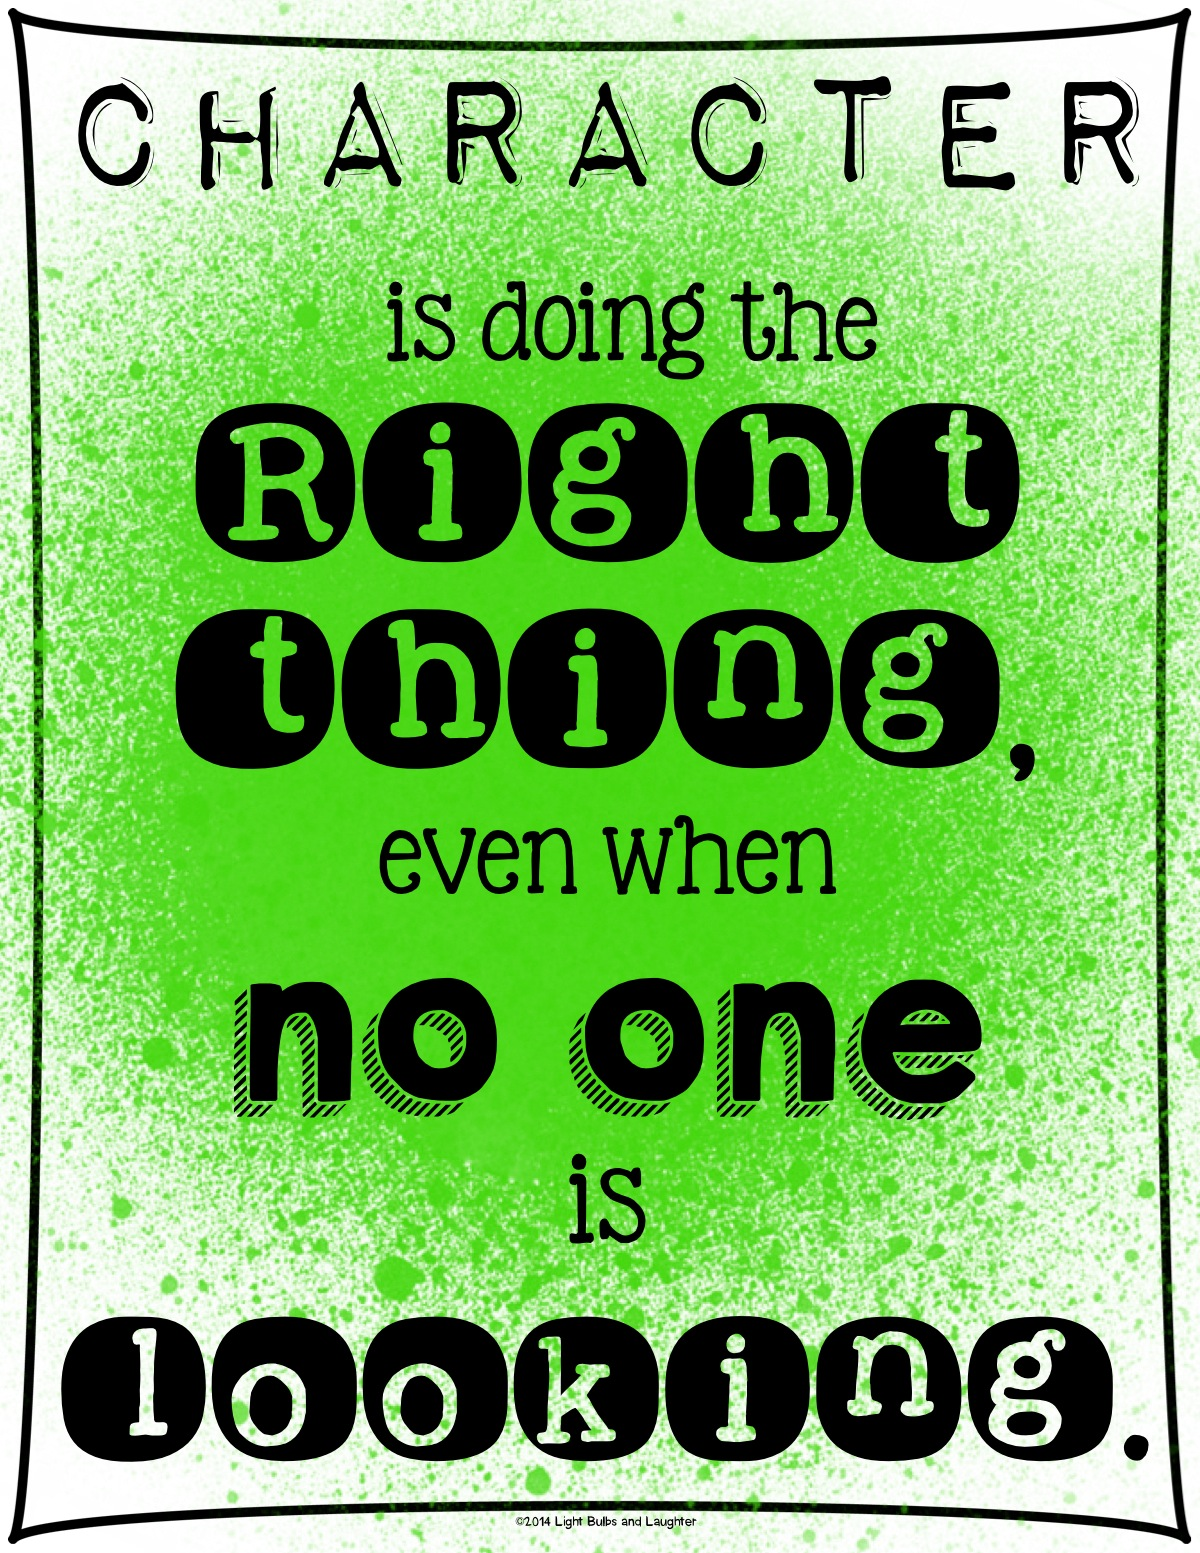 Classroom Posters For Every Teacher - Light Bulbs and Laughter